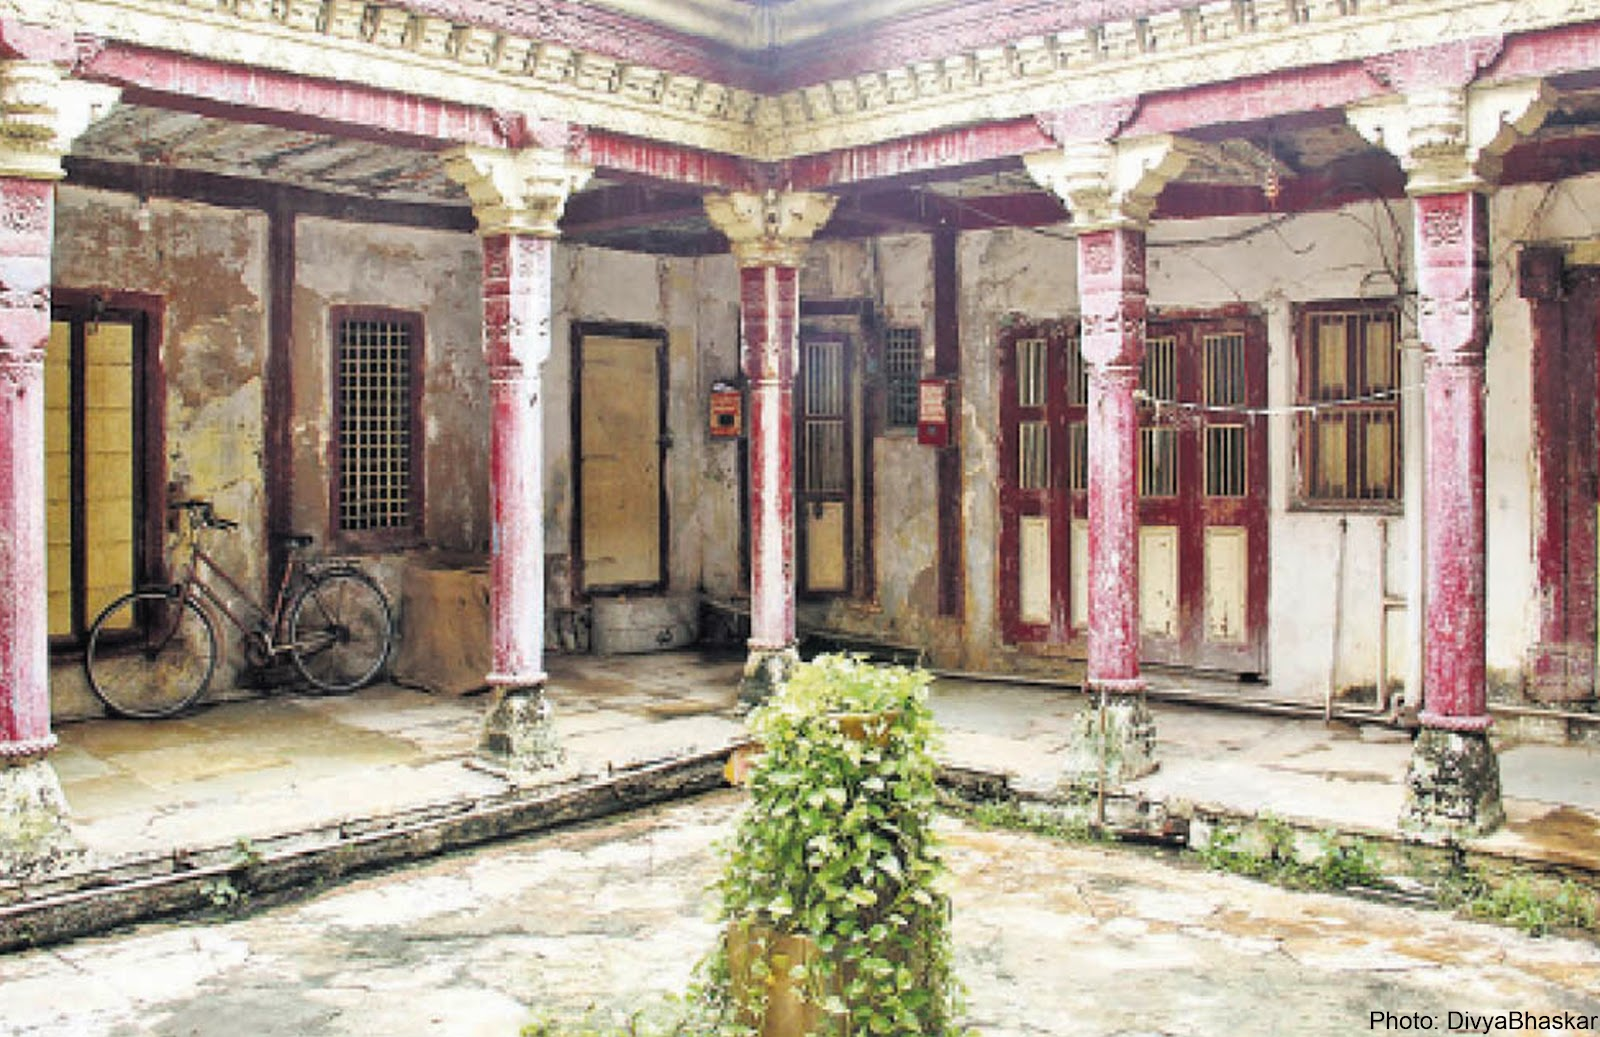 The Chok at Hari - Bhakti ni Haveli